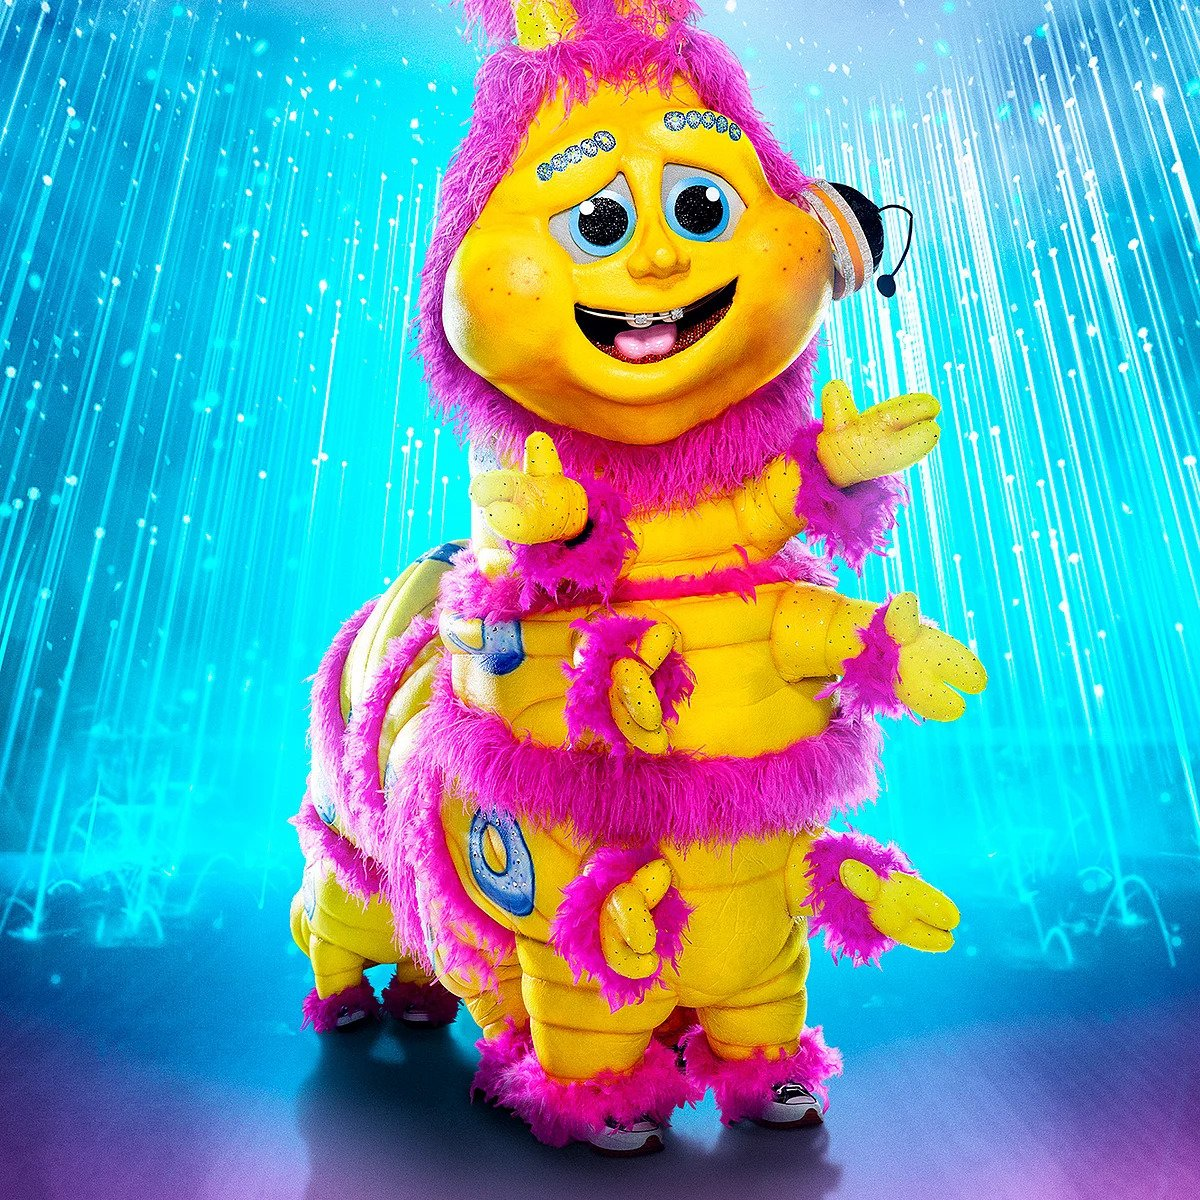 Caterpillar is still in to win The Masked Singer